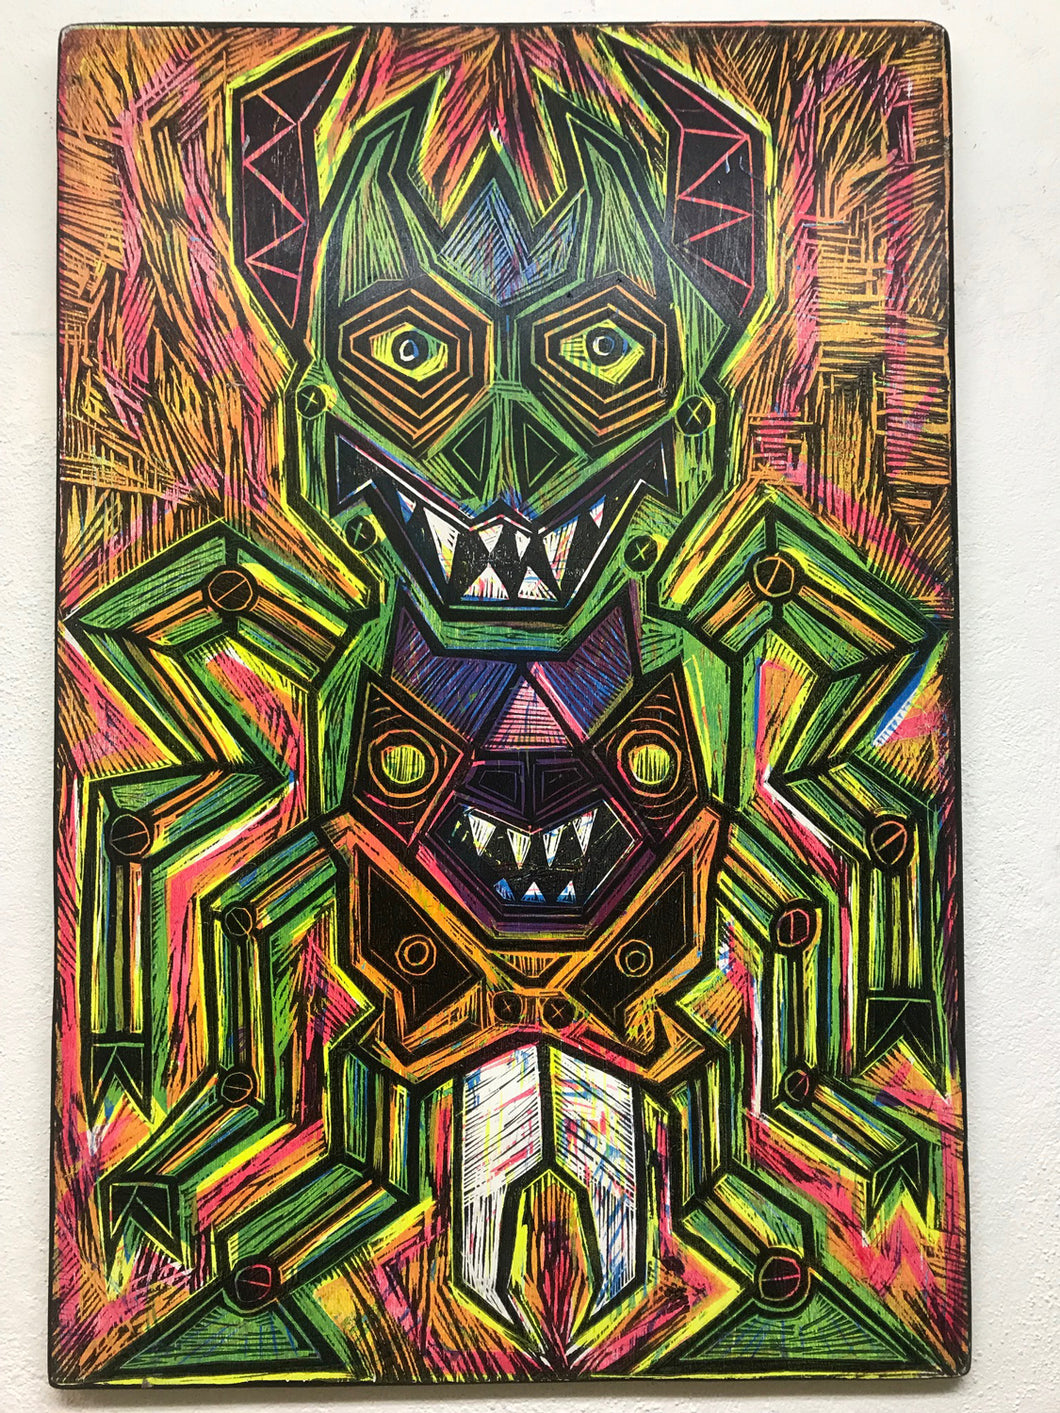 Warlord Woodcut Printed on Wooden Panel